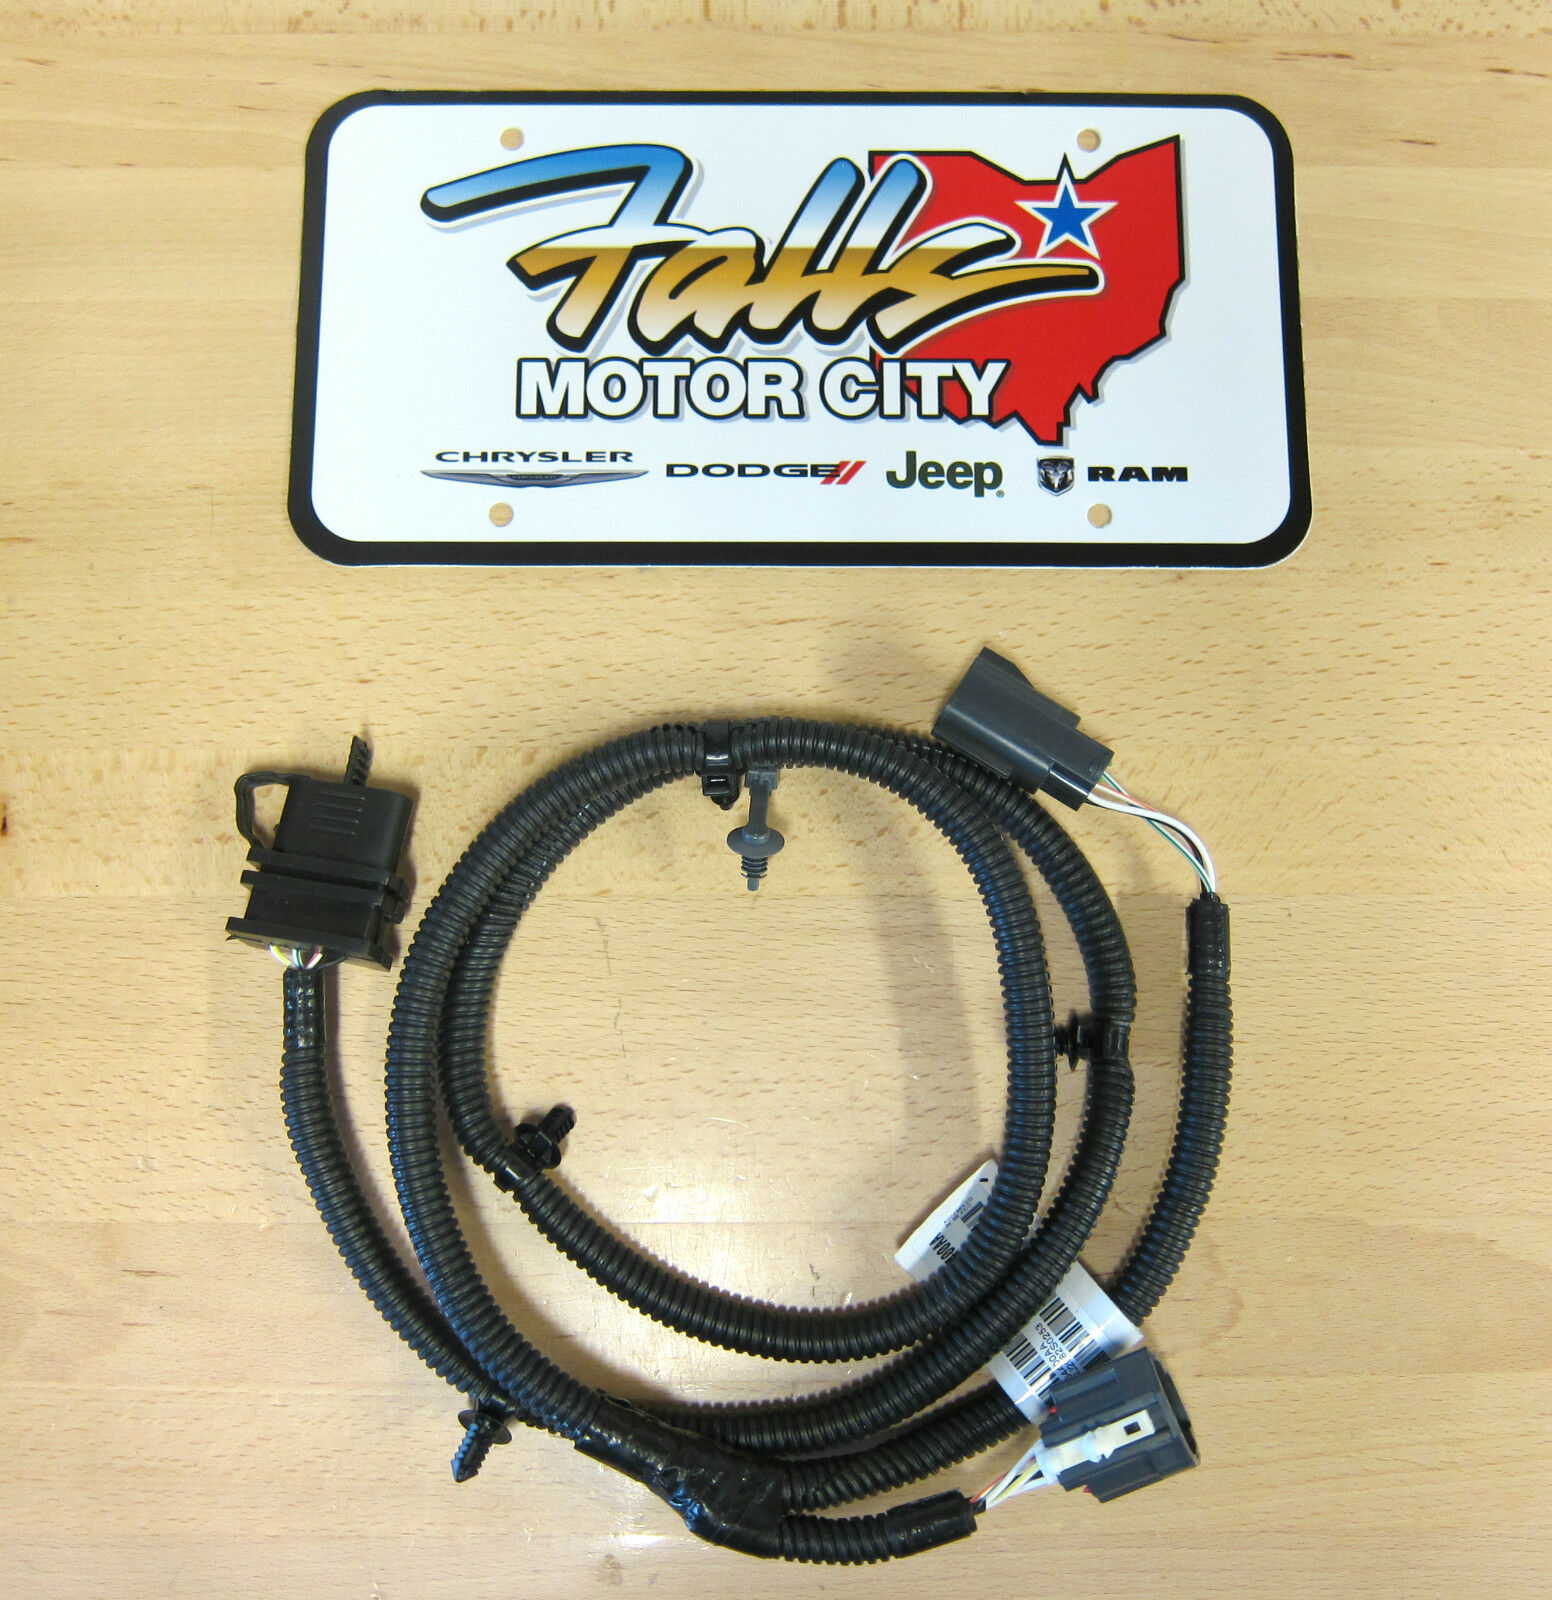 Jeep Wrangler Trailer Tow Wiring Harness Oem Mopar 82210213 Jk 4 Way Kit 2007 2018 Hitch